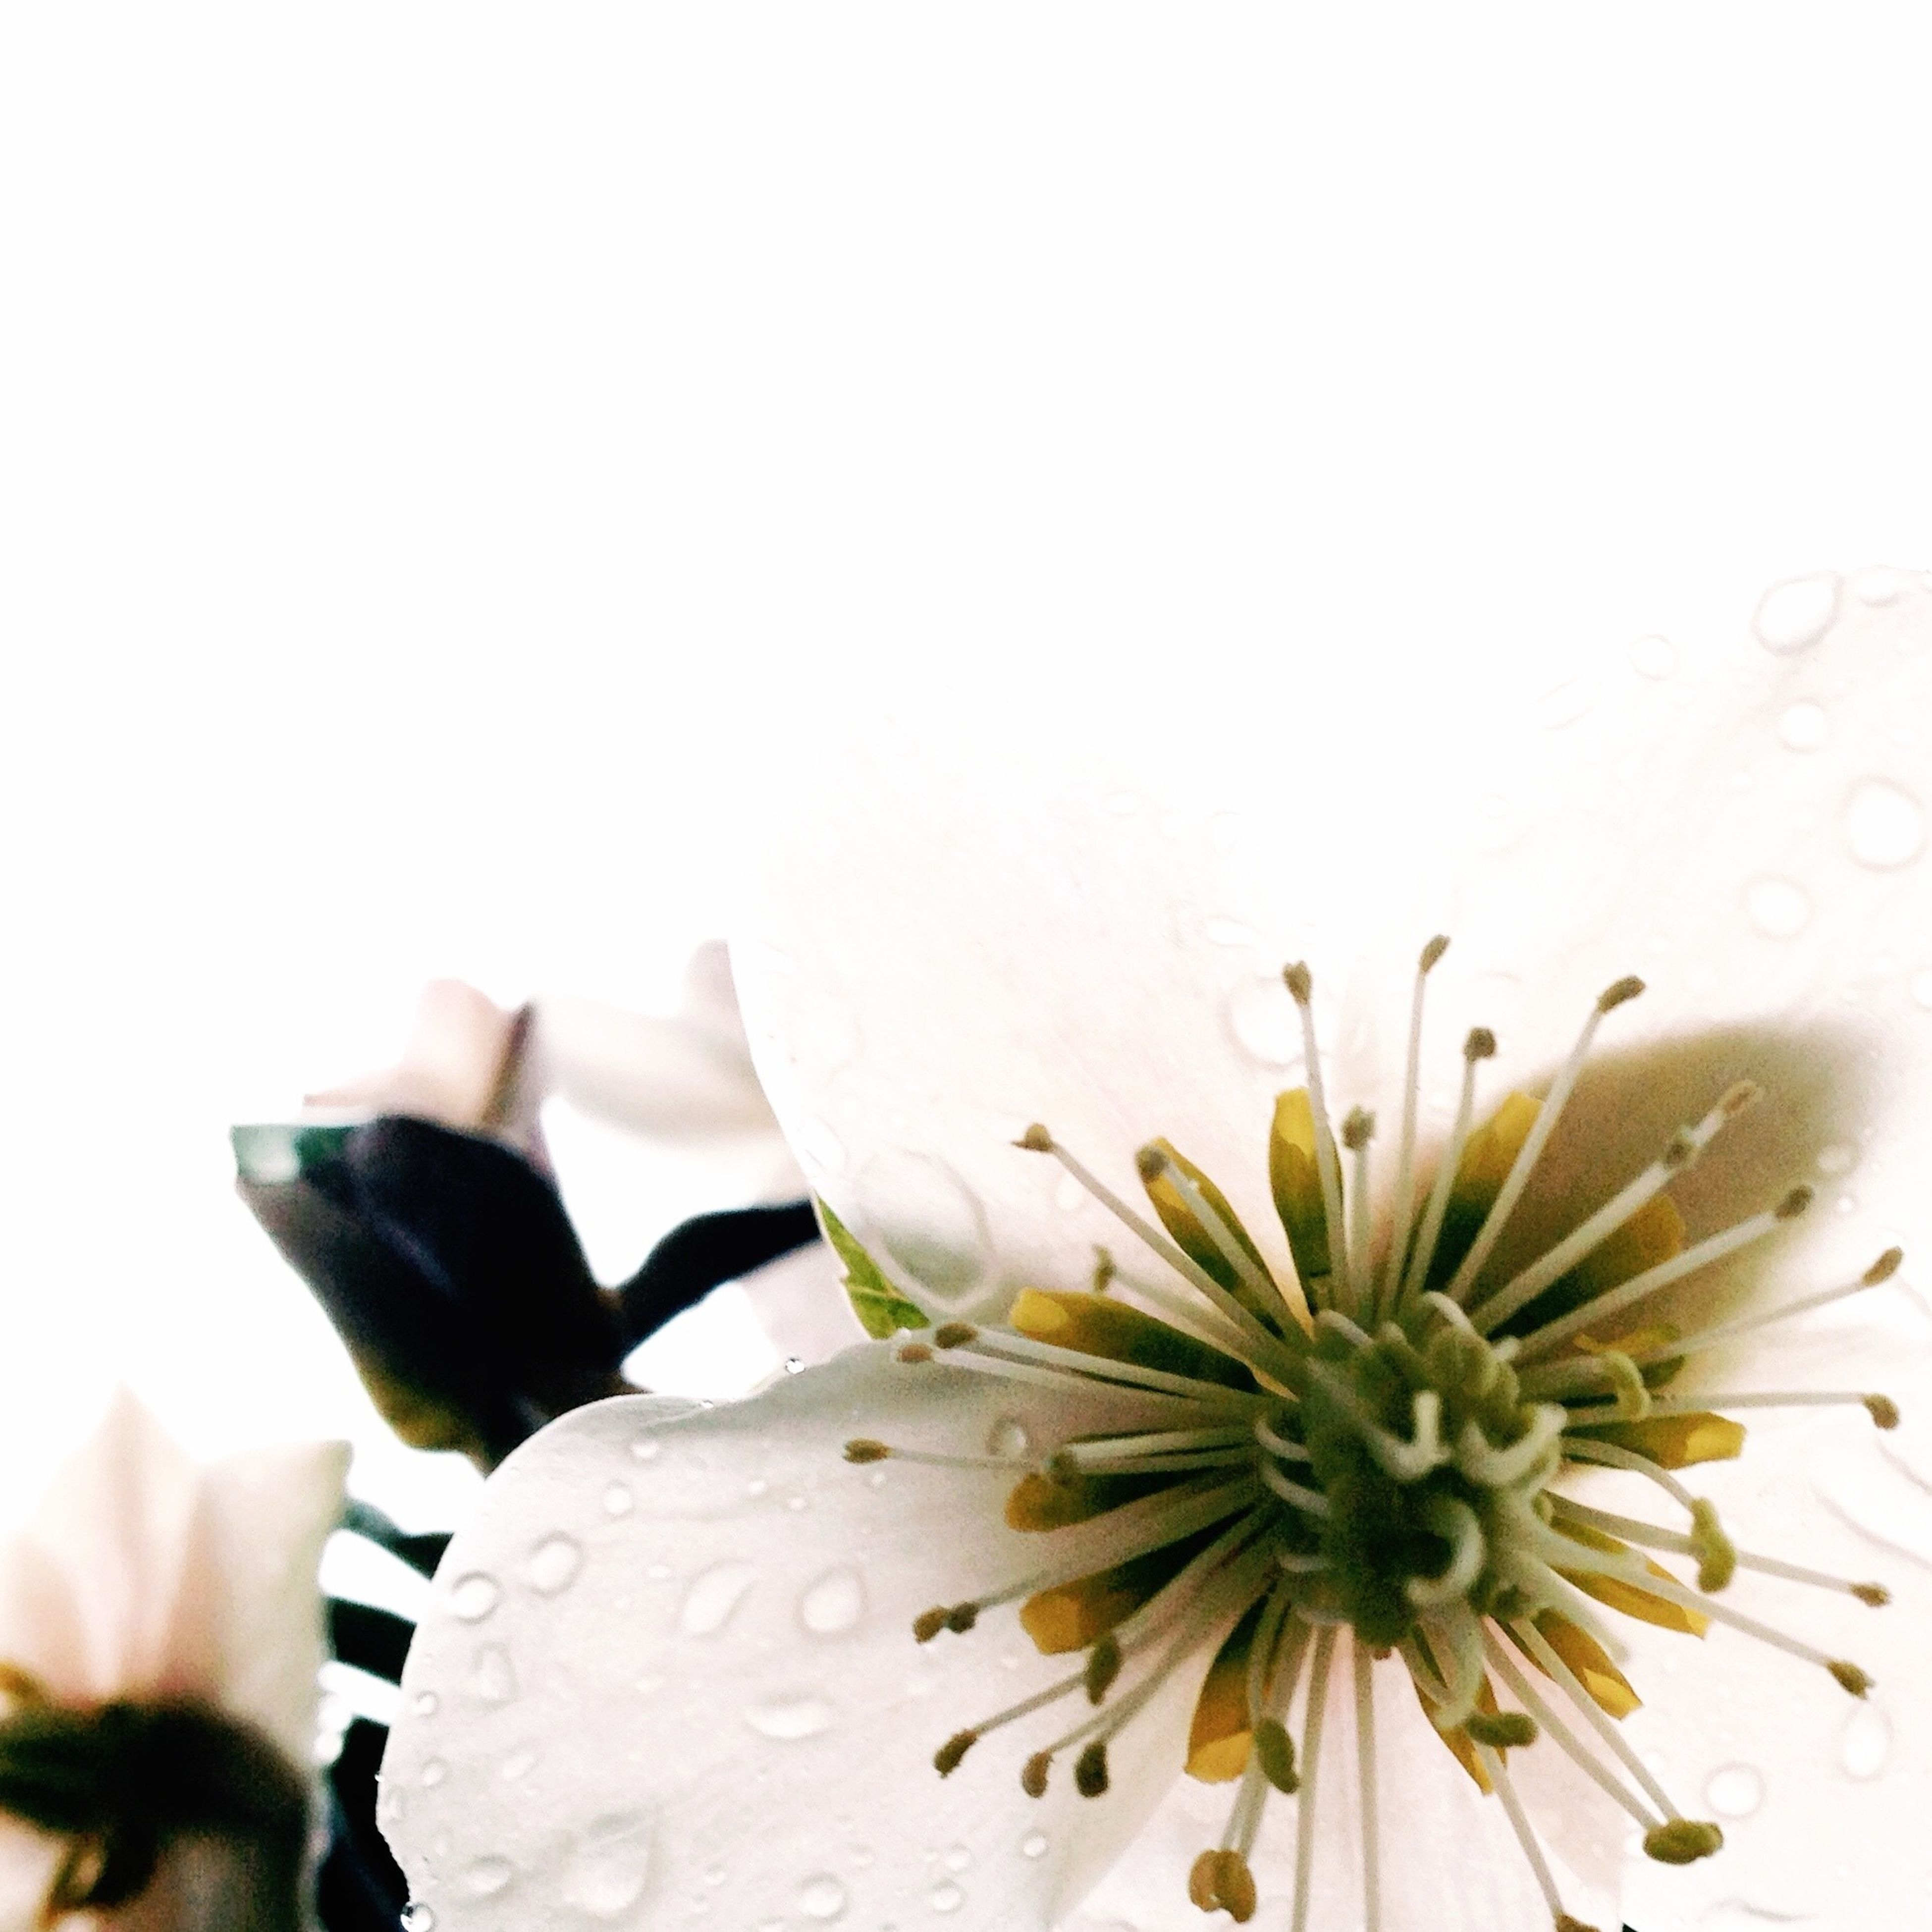 flower, fragility, petal, freshness, flower head, close-up, water, copy space, indoors, plant, beauty in nature, nature, focus on foreground, wet, drop, single flower, glass - material, yellow, day, no people